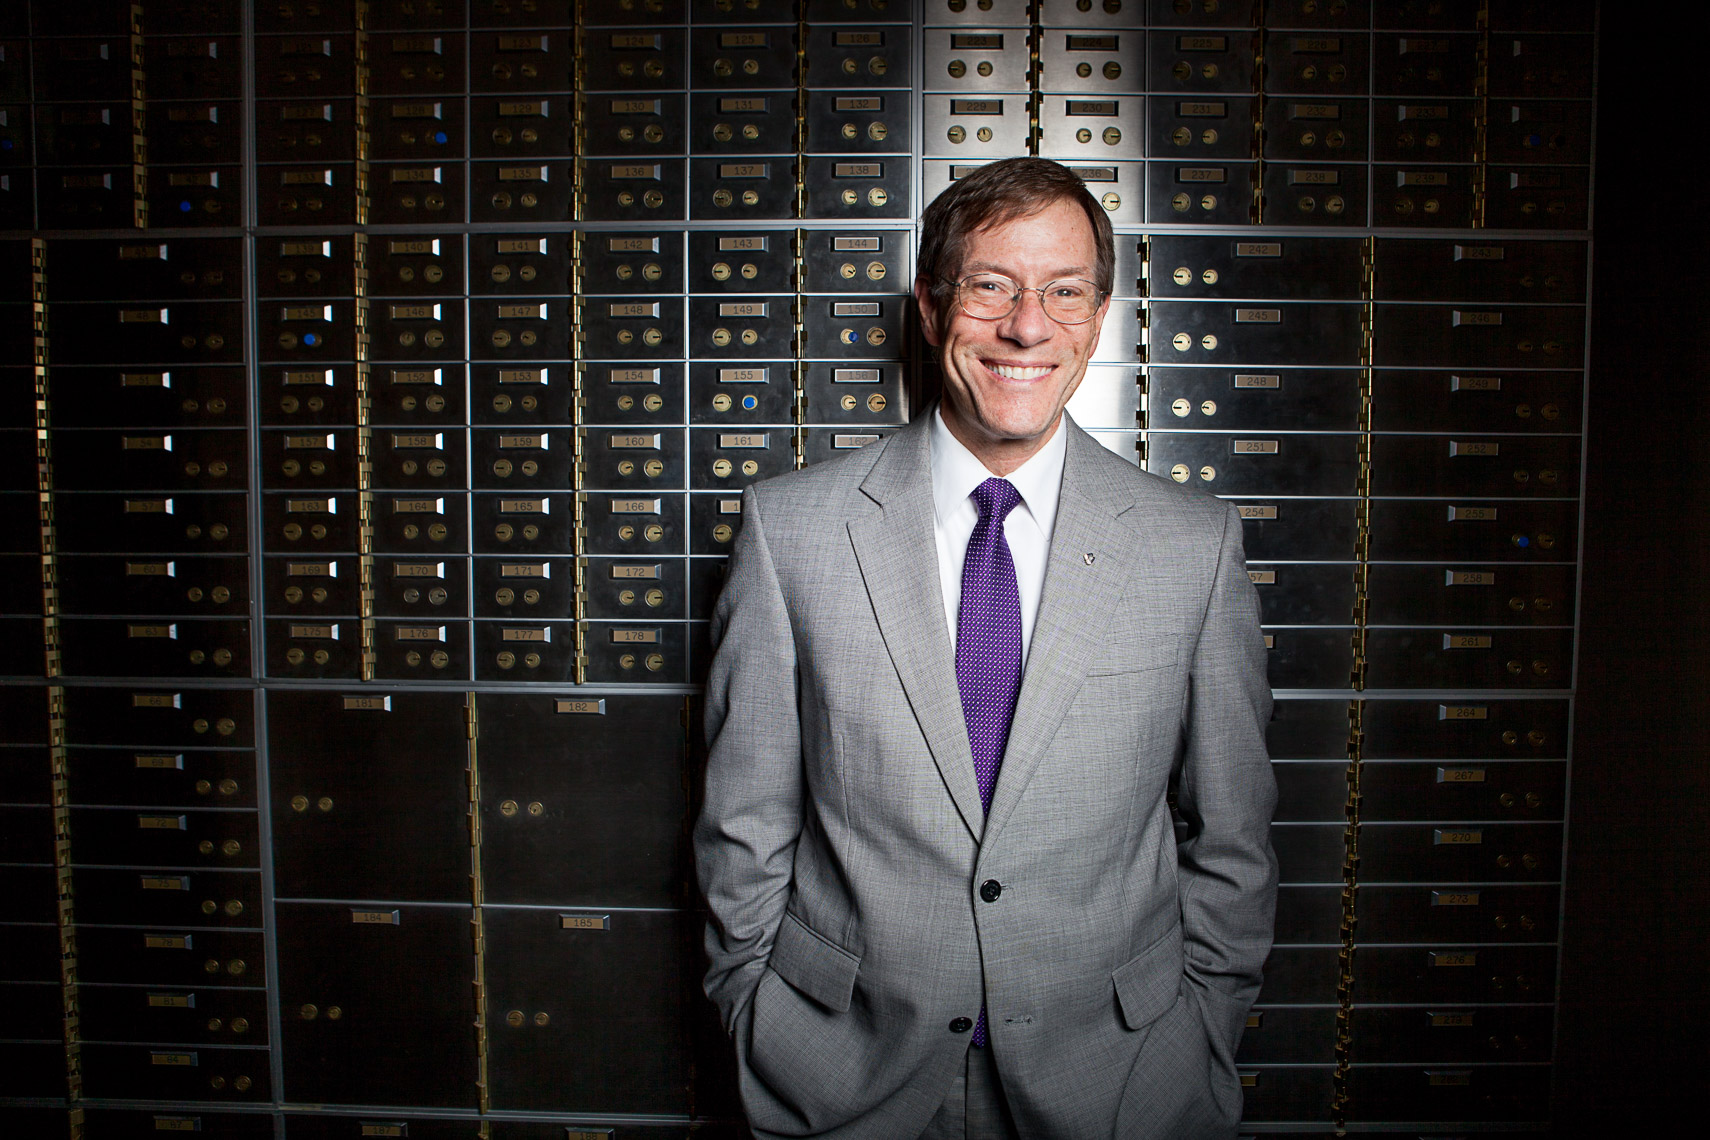 020_0001_rick_mortan_banker_commercial_portrait_corporate_editorial_advertising__portrait_photographer_hartford_ct_photojane_photojane